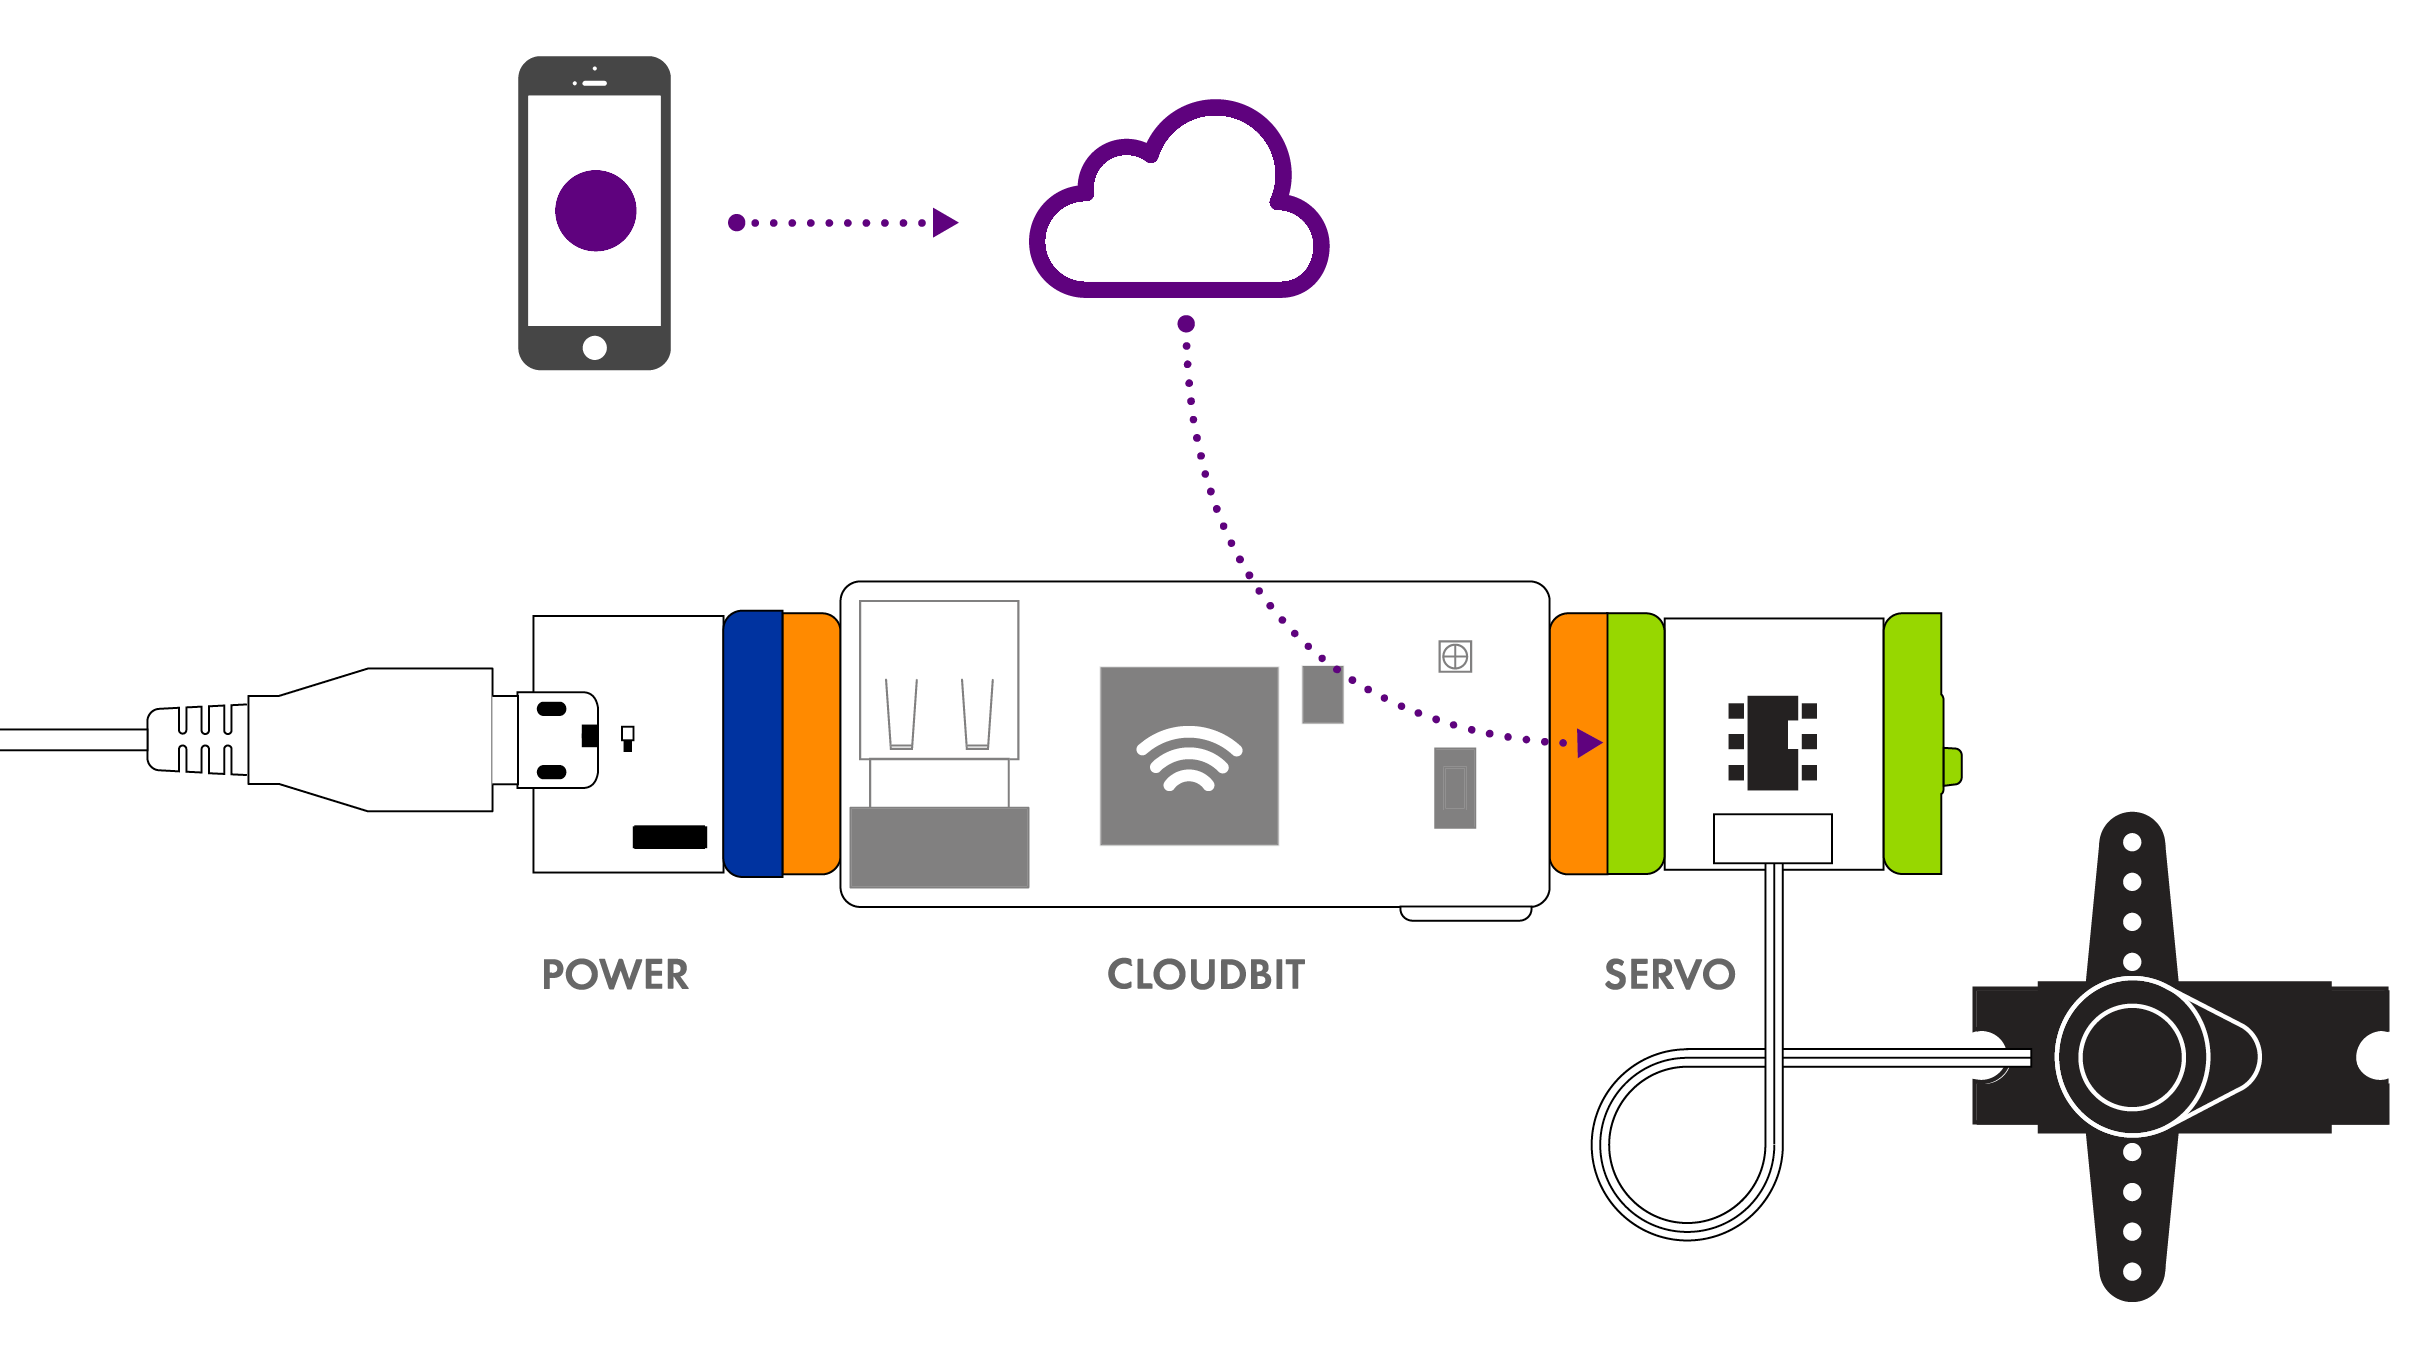 width=500 height=281 /></p> <p class=Banner-description u-fontWeight300 hidden-xs><span>The cloudBit acts as an input by receiving signal from your littleBits circuit and sending it to the internet. This means you can make a smart doorbell that tweets at you when someone pushes a littleBits button  or a burglar alarm to send you a text message if someone activates the littleBits sound trigger.</span></p> <p class=Banner-description u-fontWeight300 hidden-xs><span><img src=http://d1hxhfsggnhjjy.cloudfront.net/assets/products/bits/cloudbit/circuit-2-b12c66c769817a581153db0fed1ff12822e9613d4e6548e39aee83582c1c6f1e.png alt=